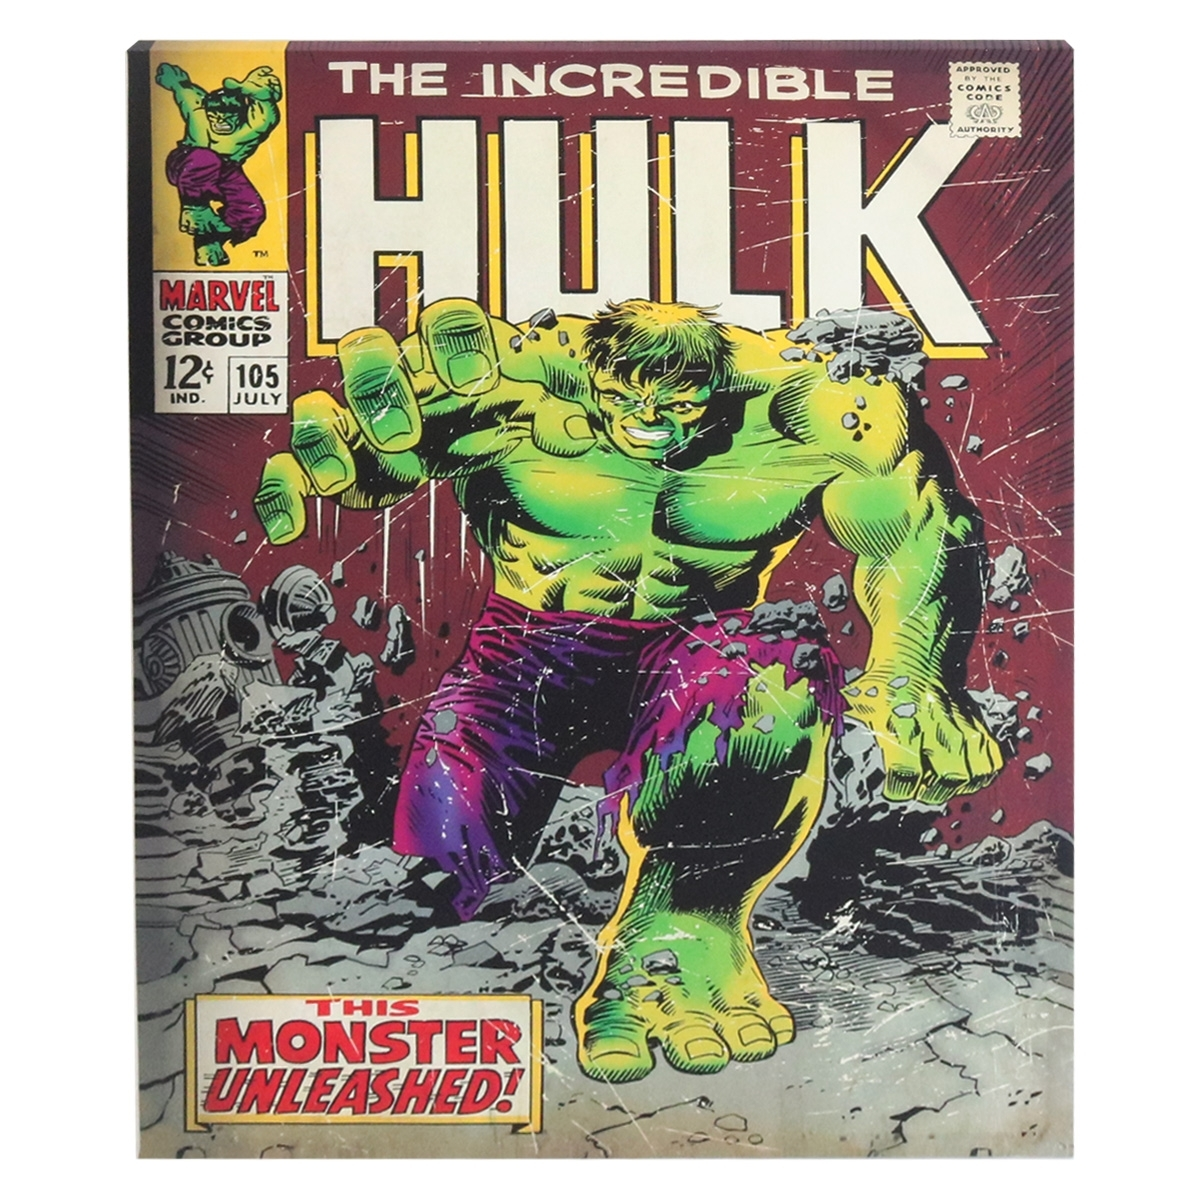 Marvel Incredible Hulk Canvas Wall Art | Harry Corry Limited With Regard To Most Popular Marvel Canvas Wall Art (View 13 of 15)